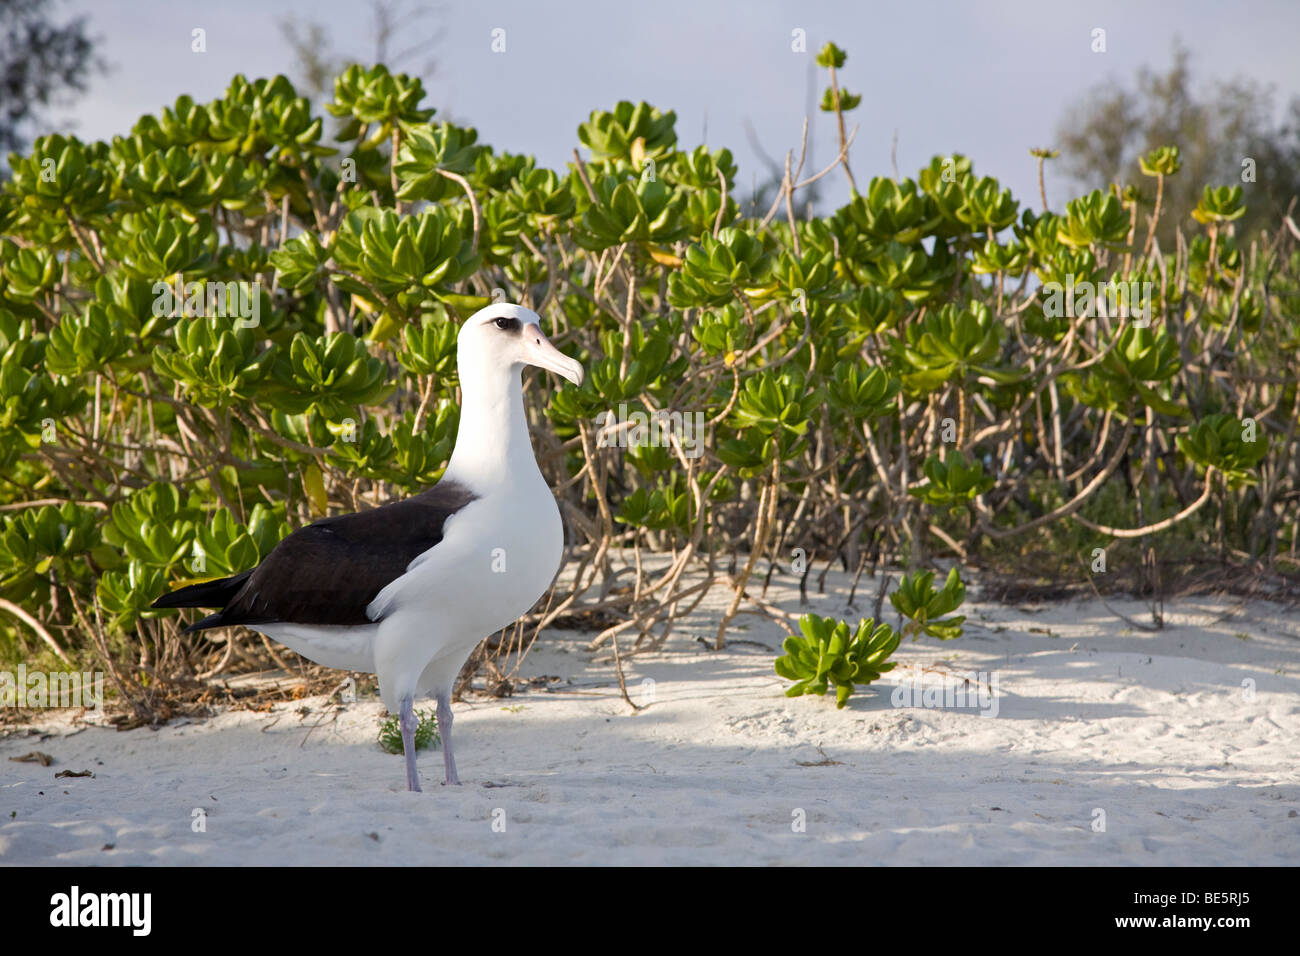 Laysan Albatross (Phoebastria immutabilis) in Naupaka shrubs on the beach of a North Pacific island - Stock Image